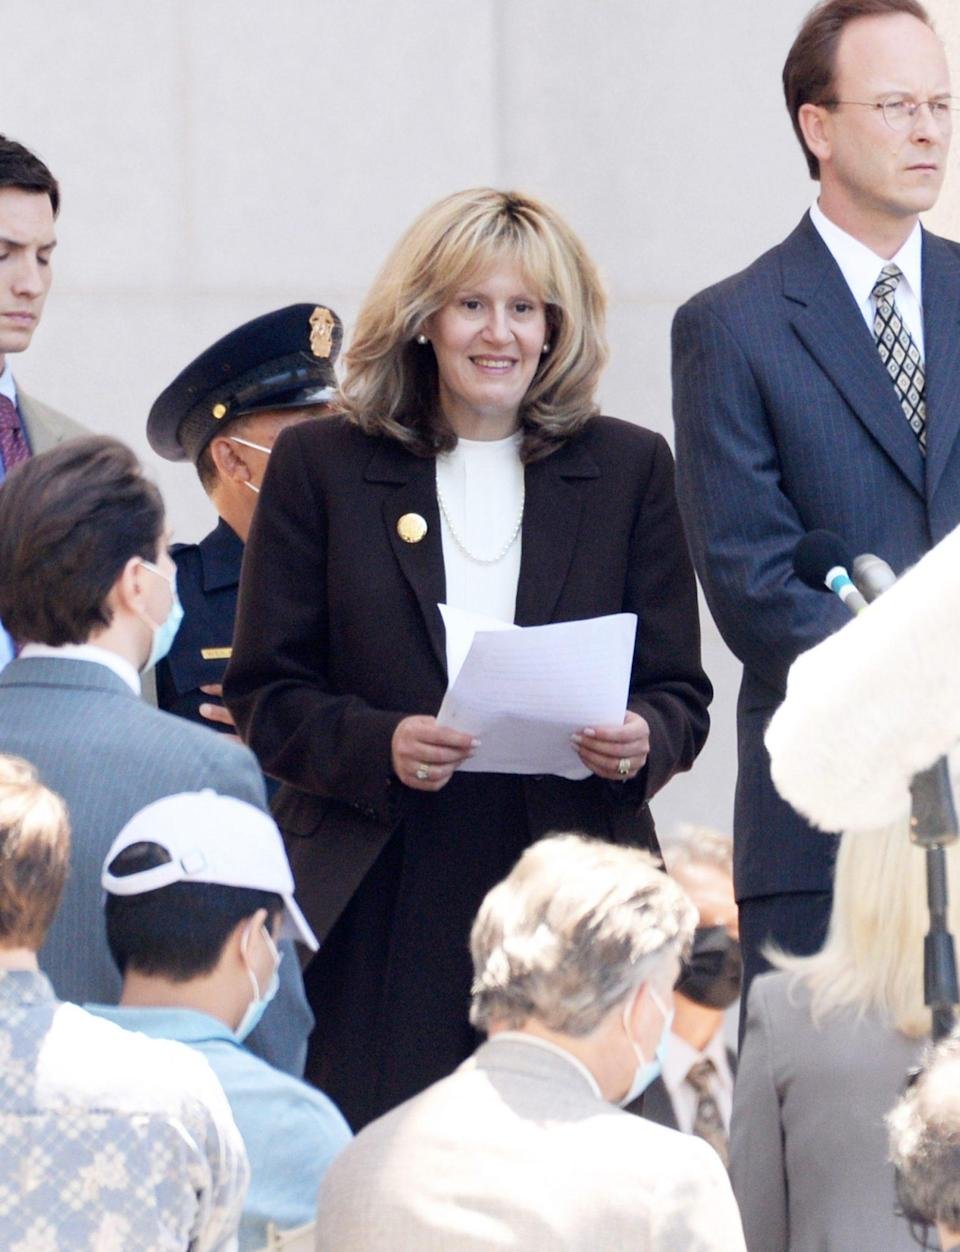 <p>Sarah Paulson is unrecognizable as Linda Tripp on the set of <em>American Crime Story: Impeachment</em> in downtown L.A. on June 27.</p>